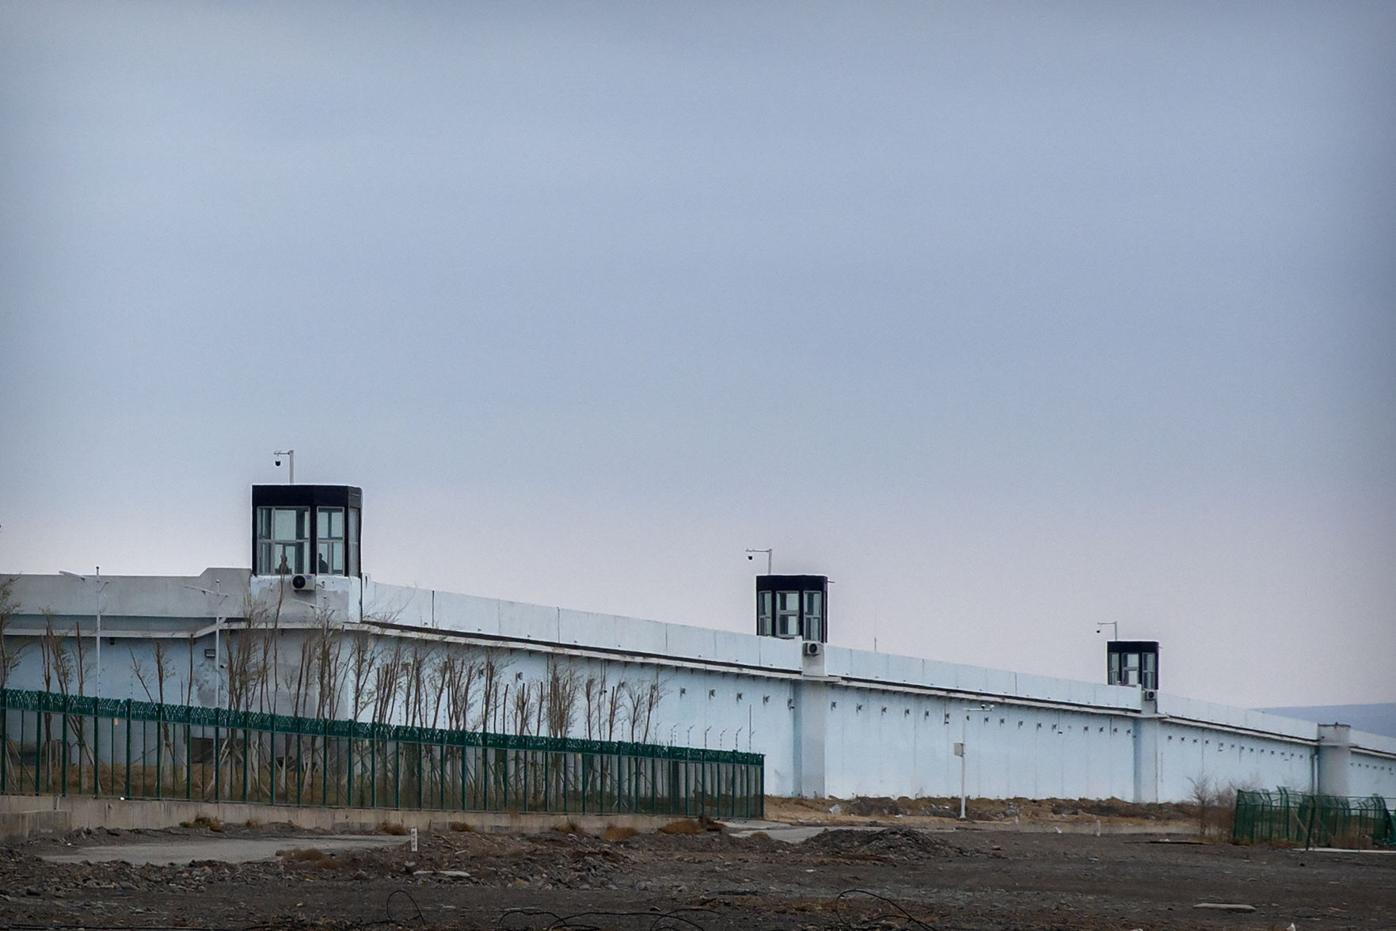 China Largest Detention Center cover